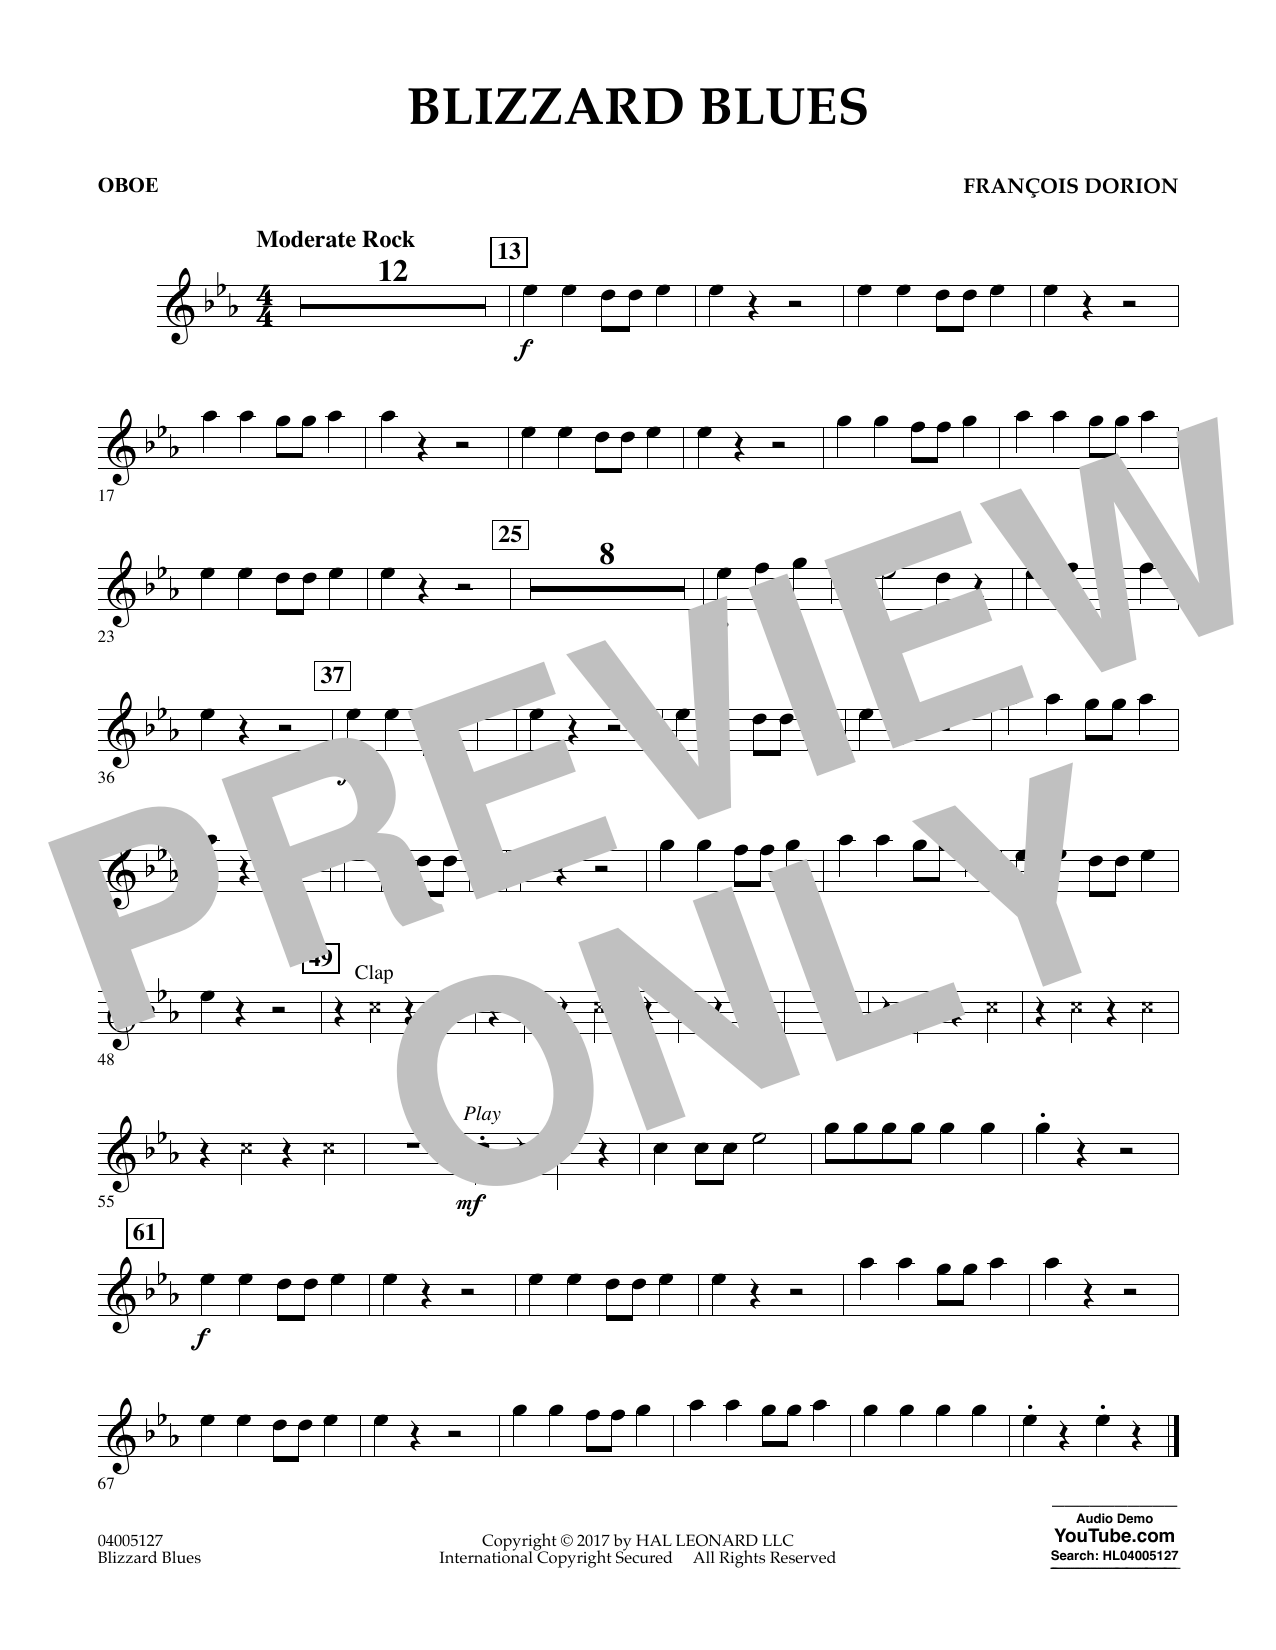 Francois Dorion Blizzard Blues - Oboe sheet music notes and chords. Download Printable PDF.